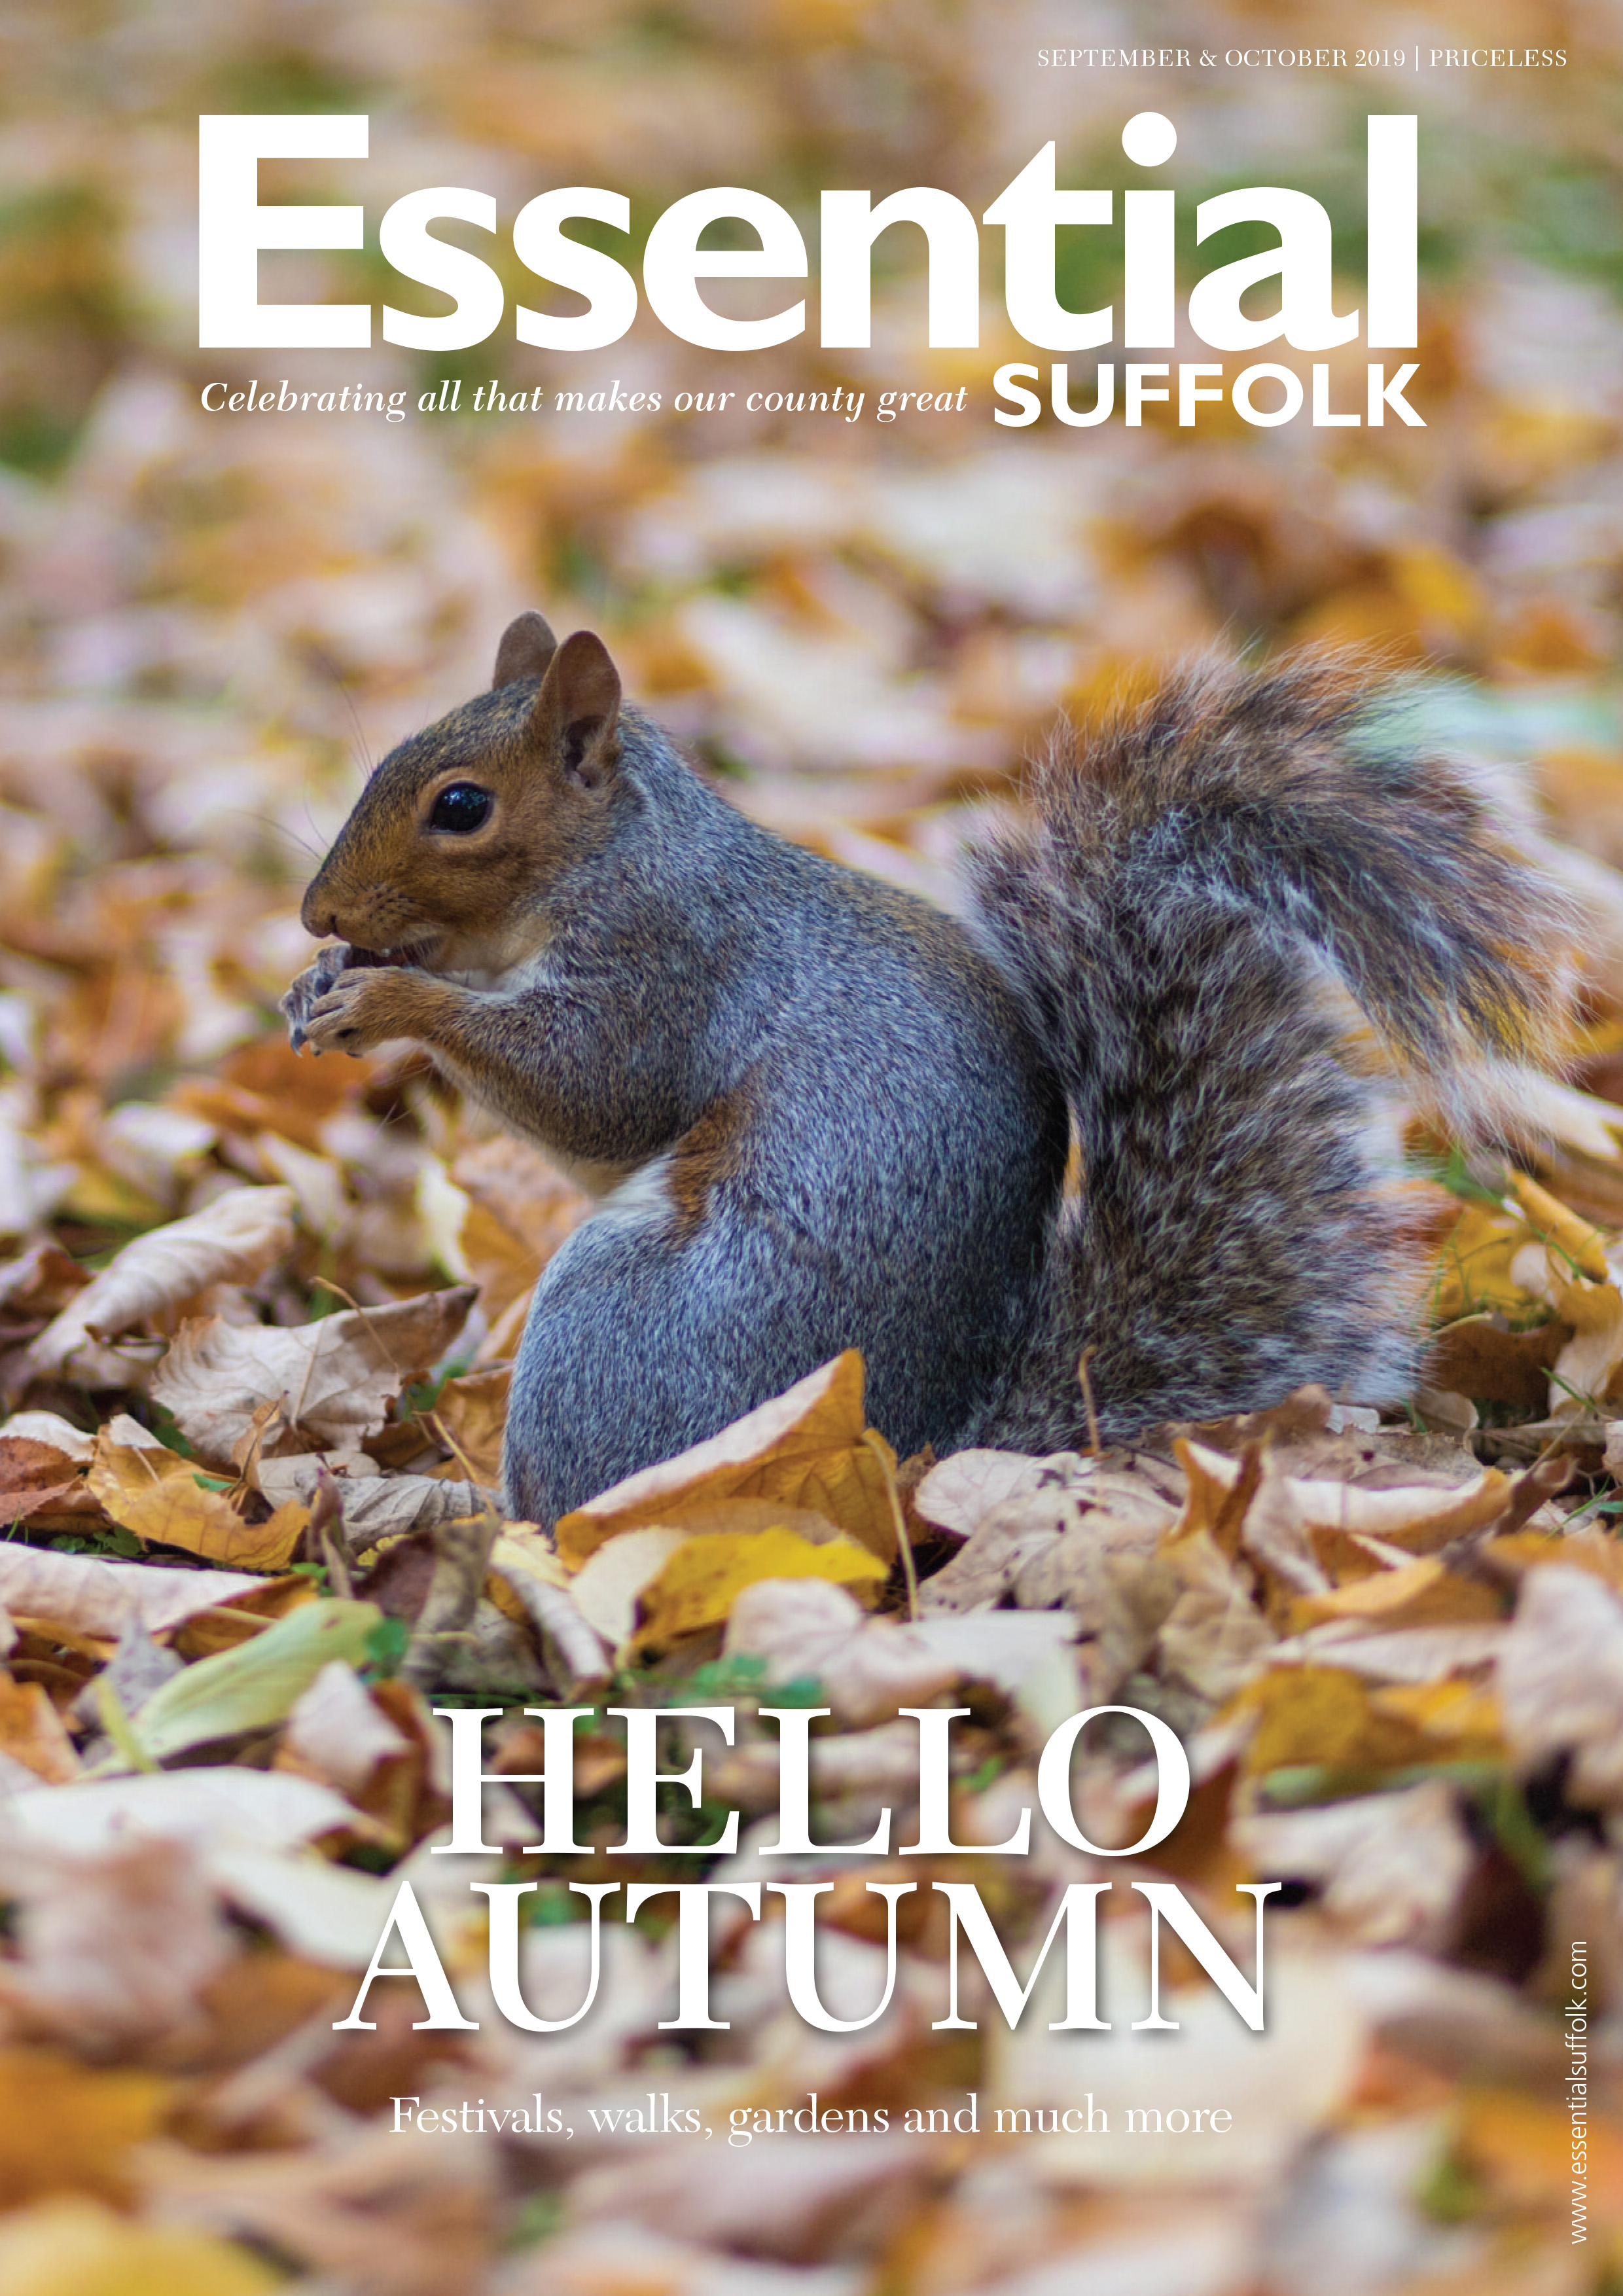 Essential Suffolk September and October 2019